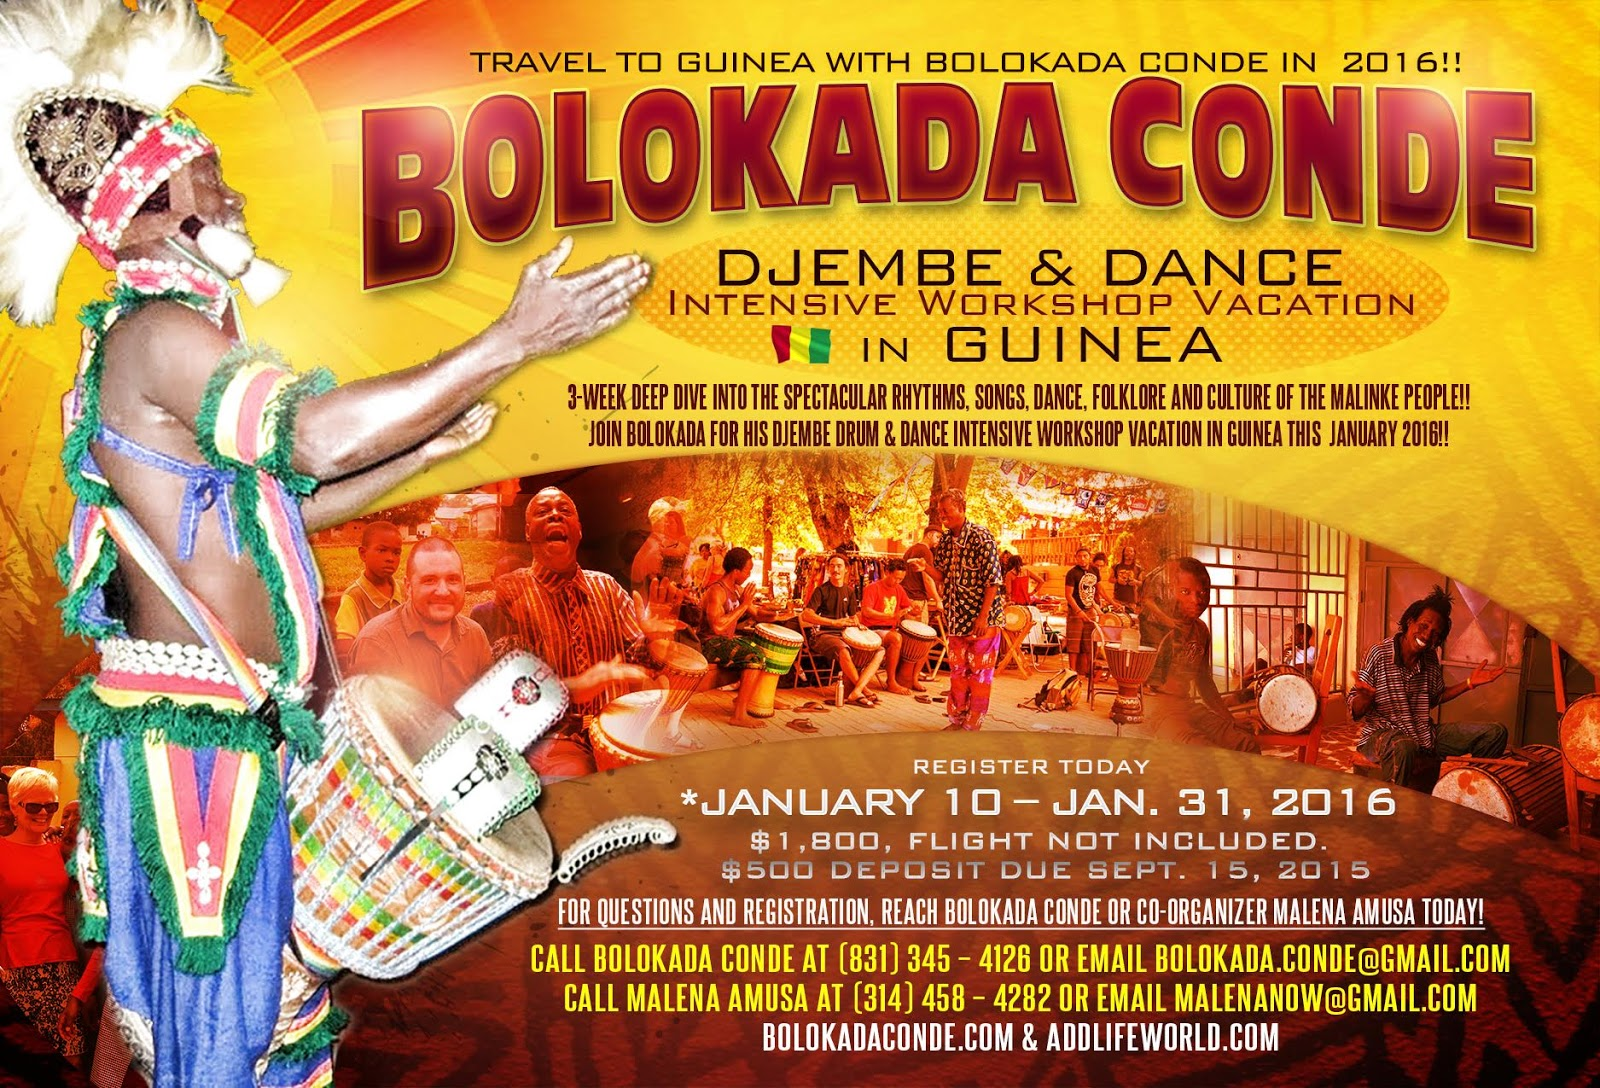 Trip to guinea with Bolokada Conde